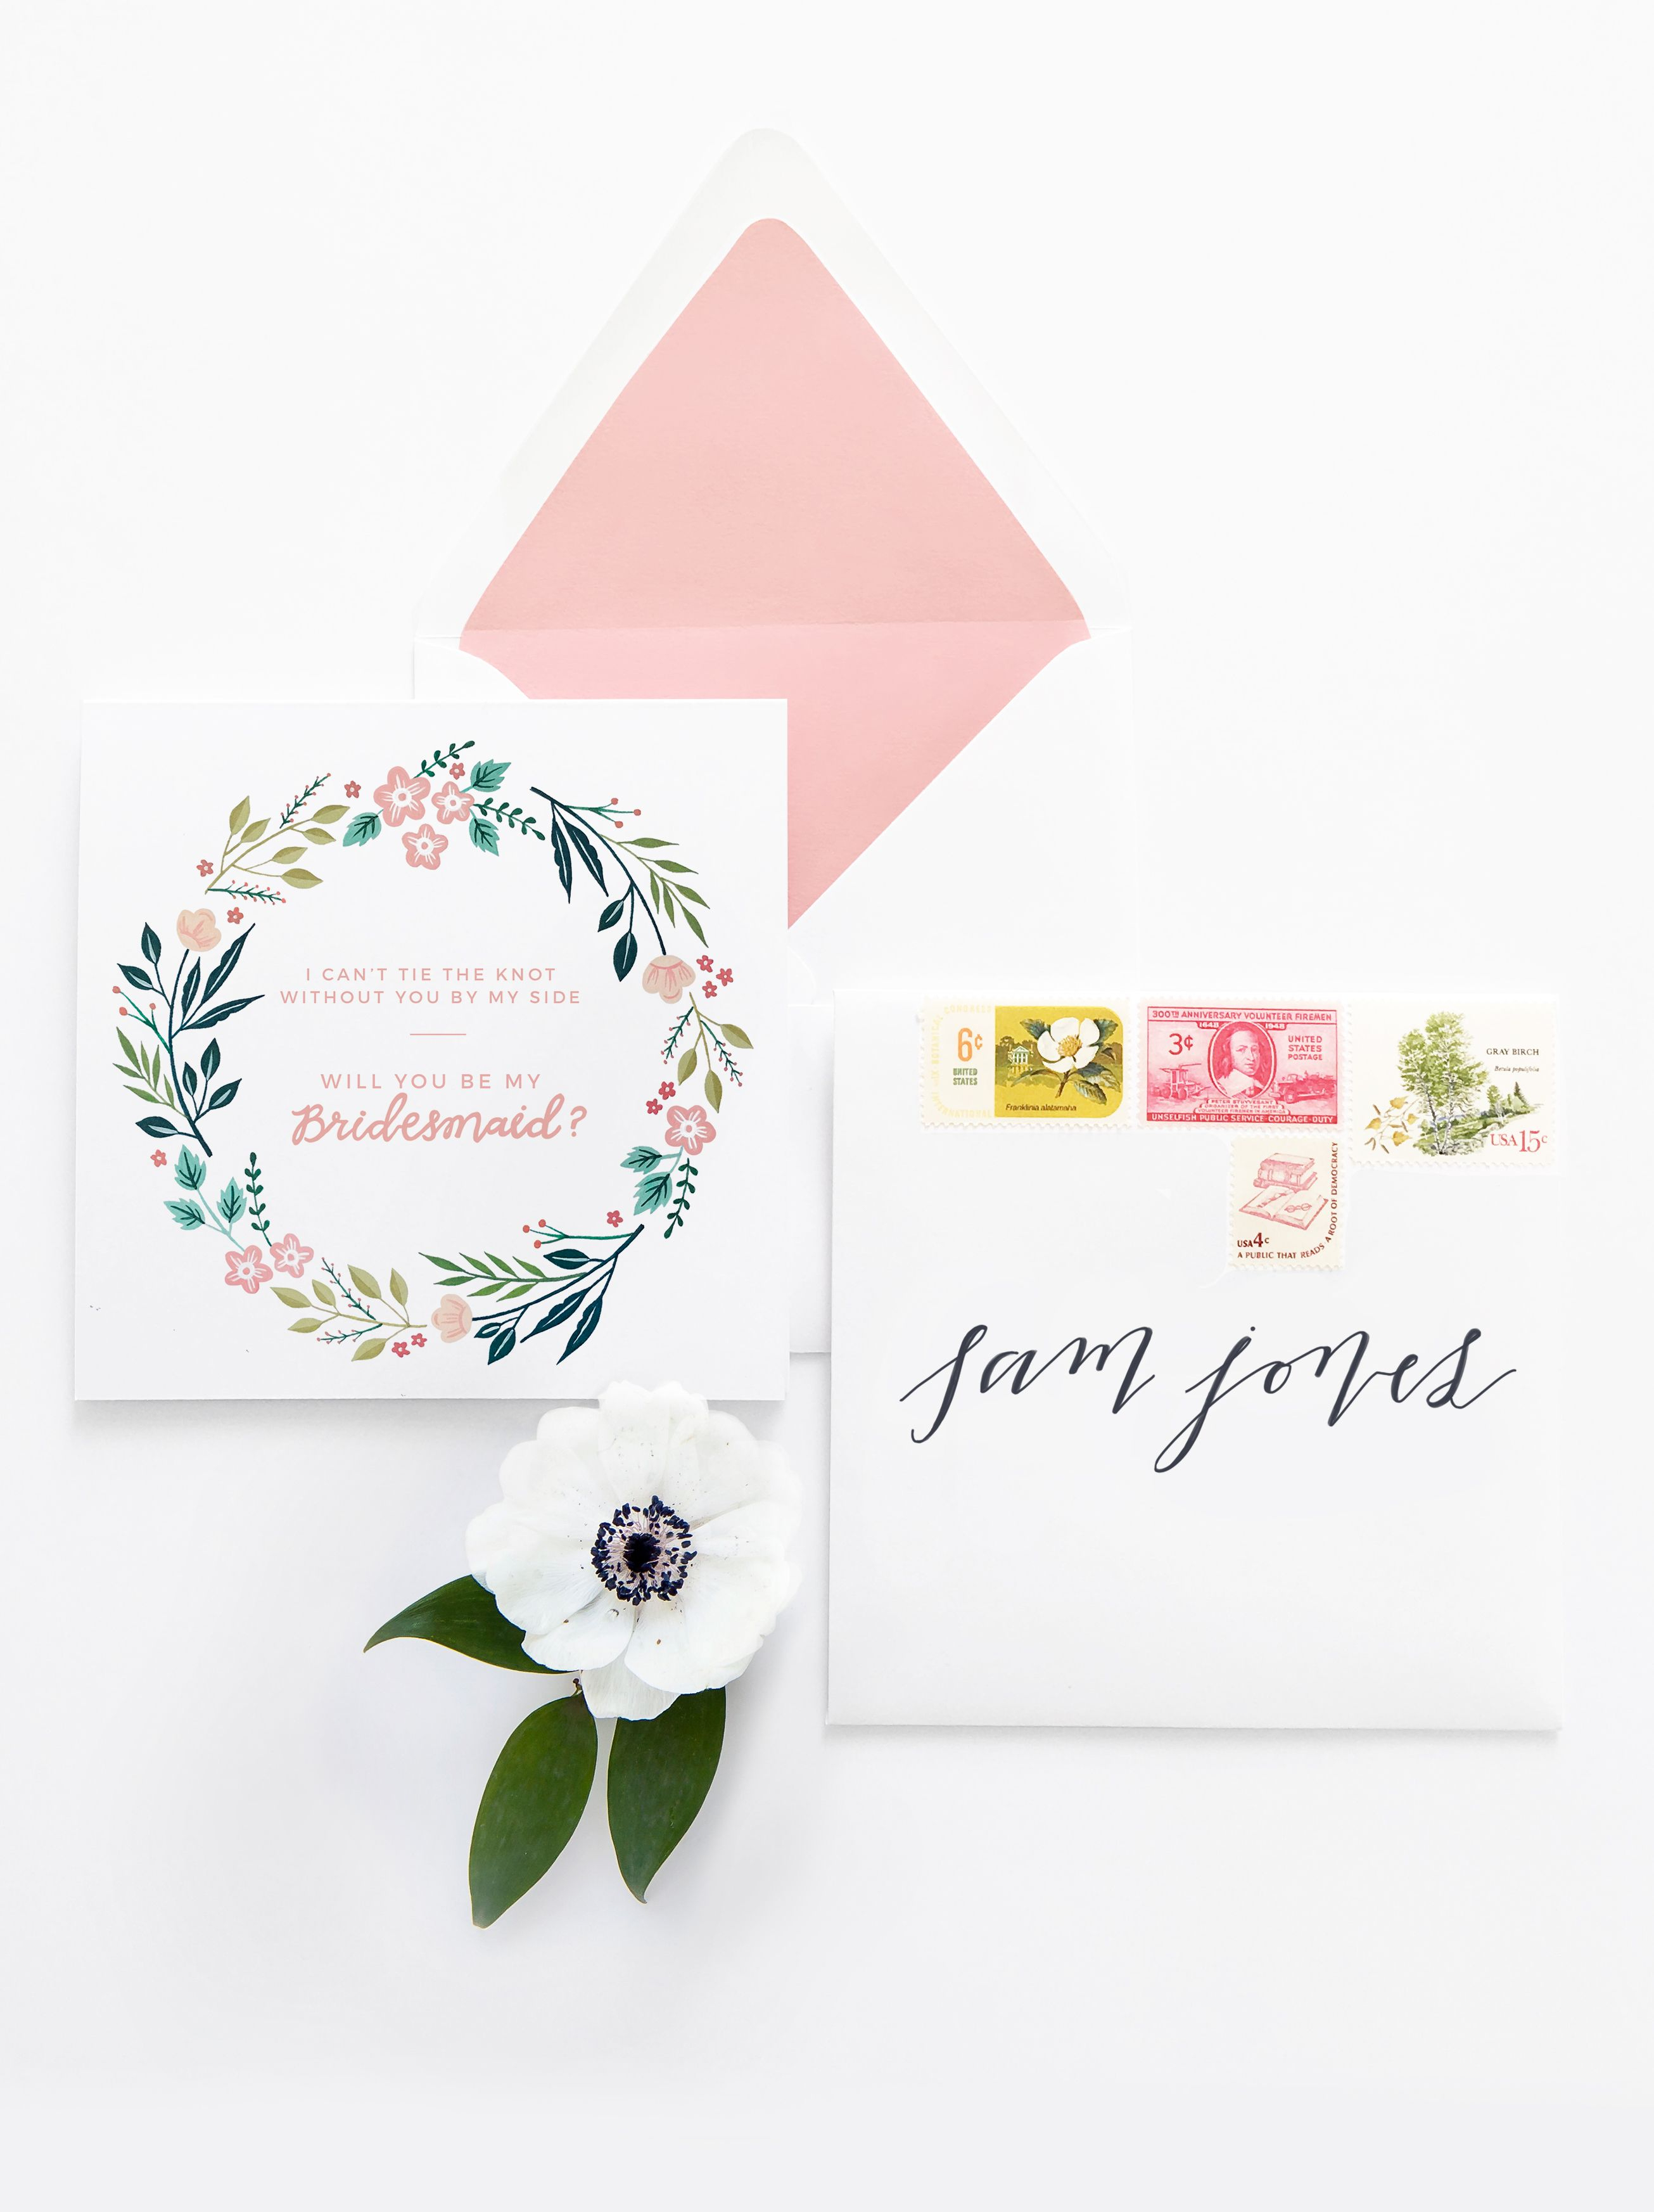 Free Printable - Will You Be My Bridesmaid Card   Pinterest   Free - Free Printable Will You Be My Bridesmaid Cards